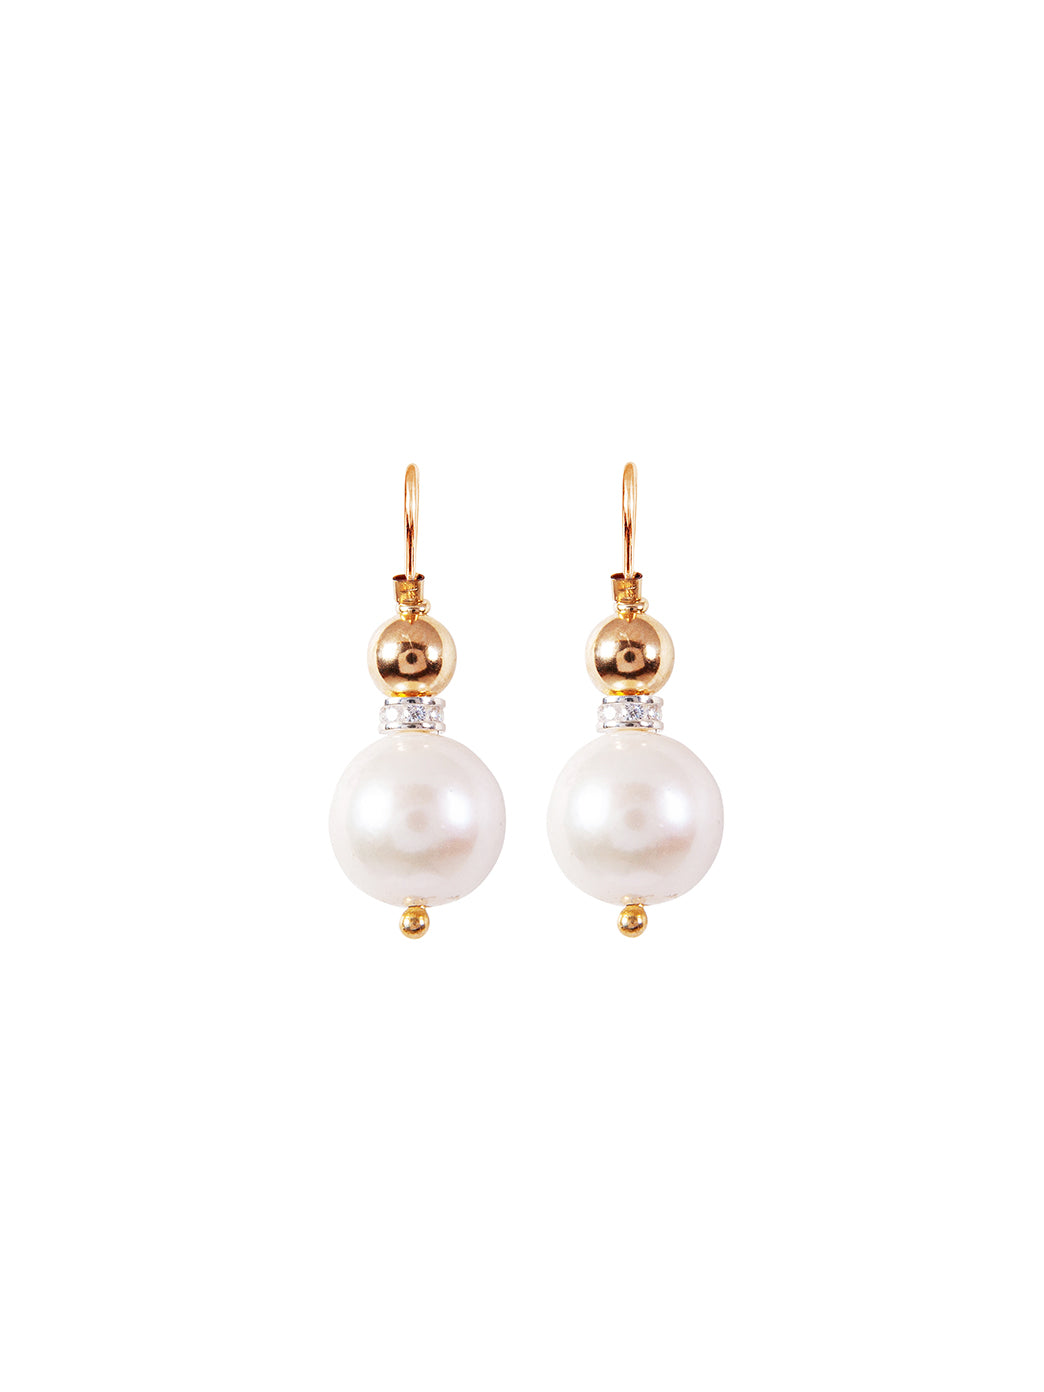 Fiorina Jewellery Elite Double Ball Earrings Pearl Gold Highlights